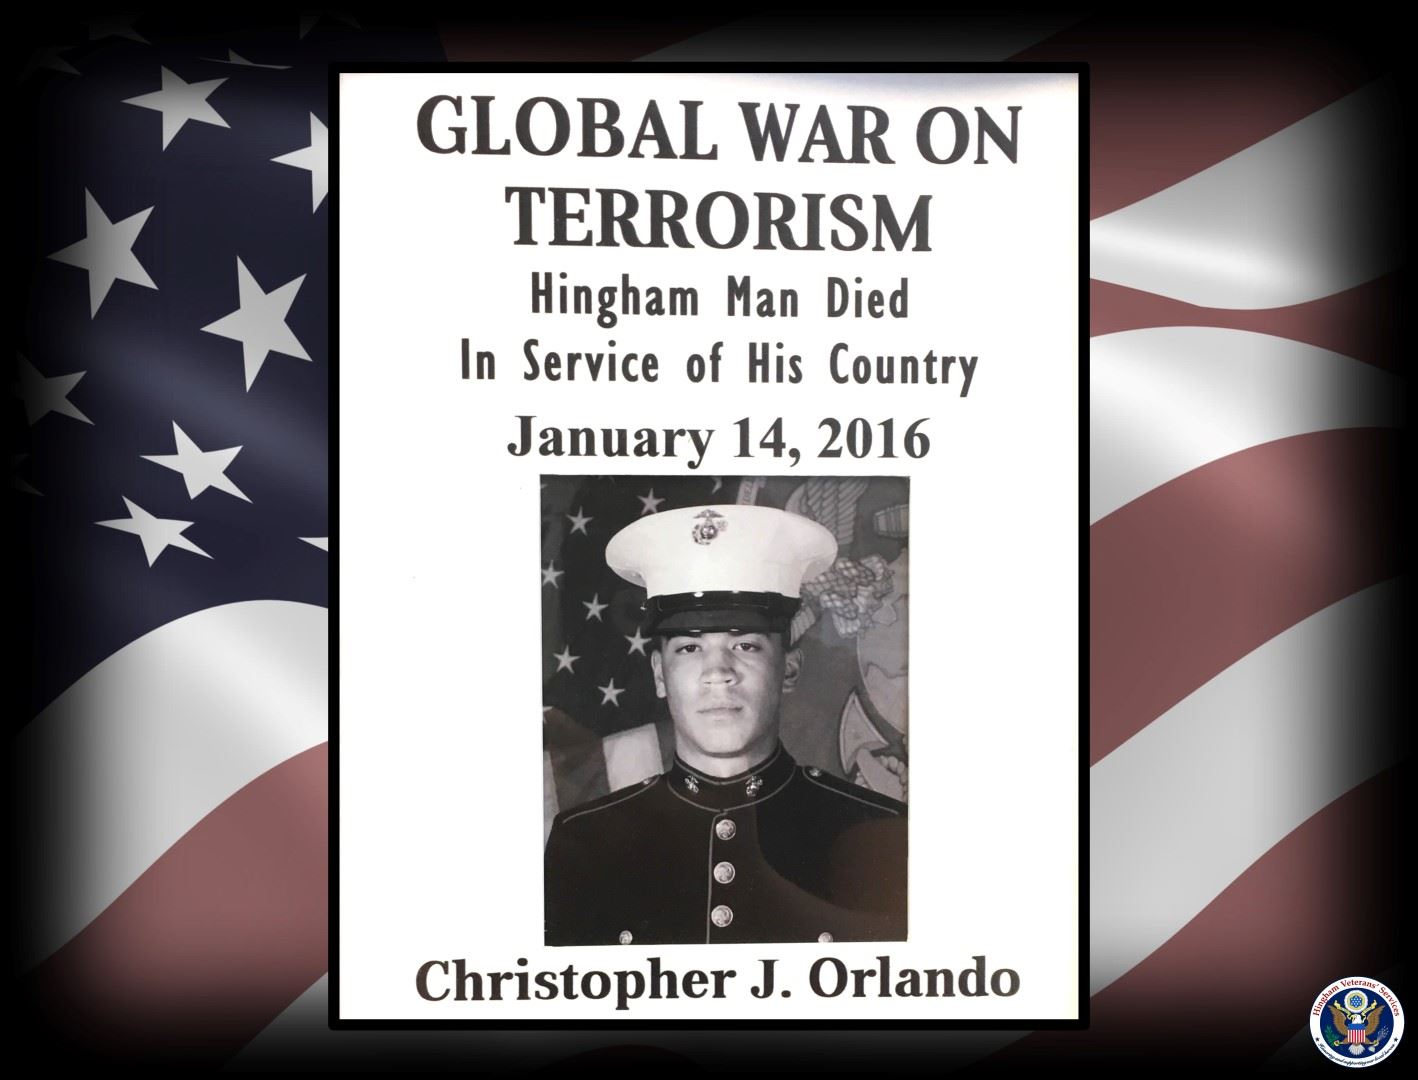 Photo of Christopher J. Orlando